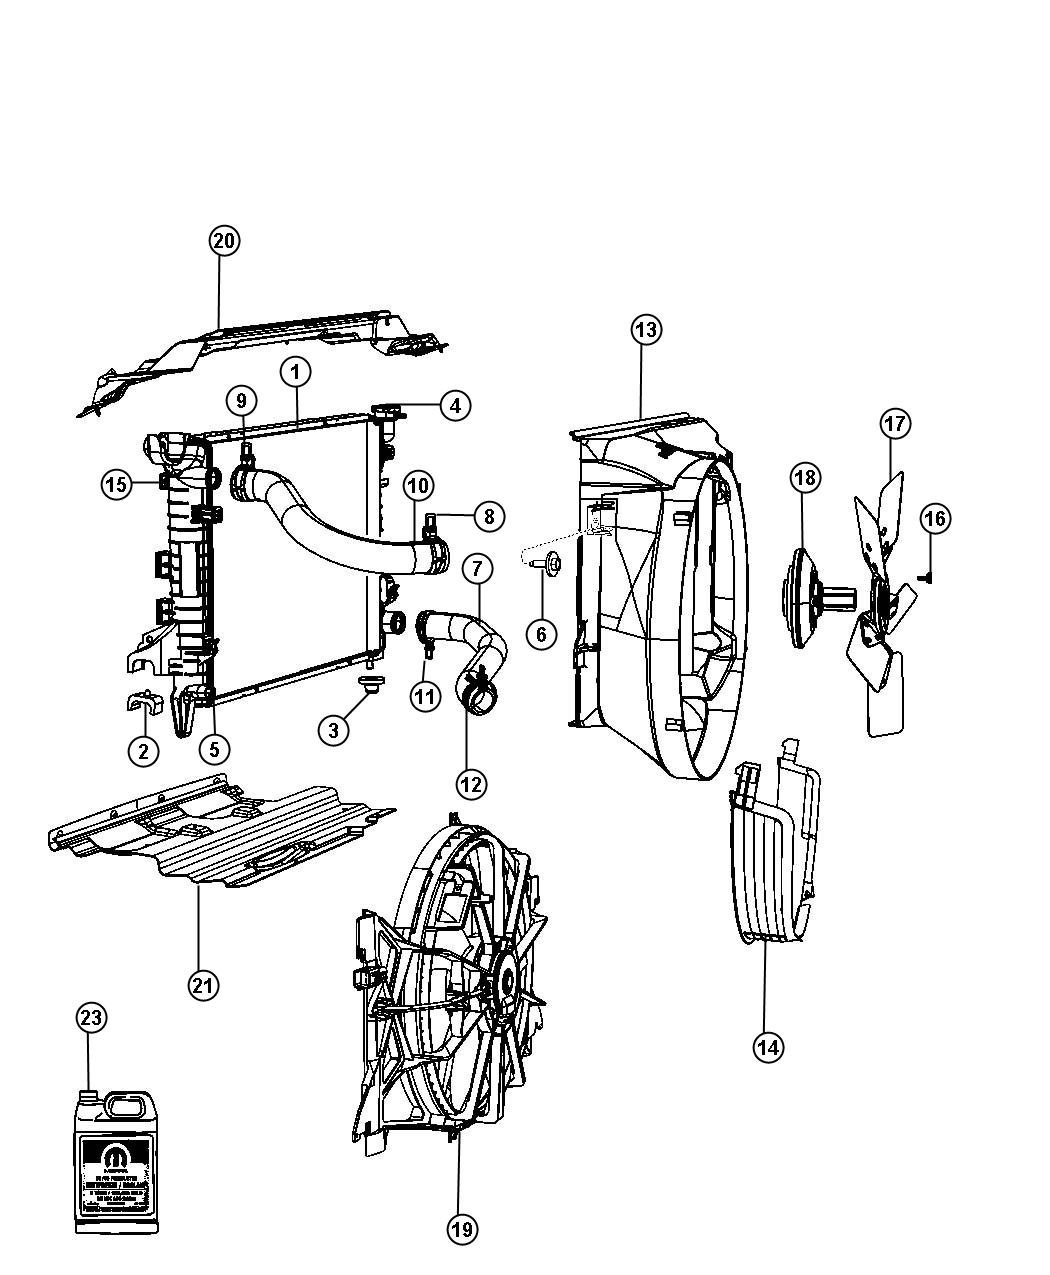 i2279639  L Hemi Engine Gasket Diagram on jeep grand cherokee, jeep cherokee, performance parts, engine pulley part number, engine pulley schematic, v8 horsepower, intake manifold upgrade,